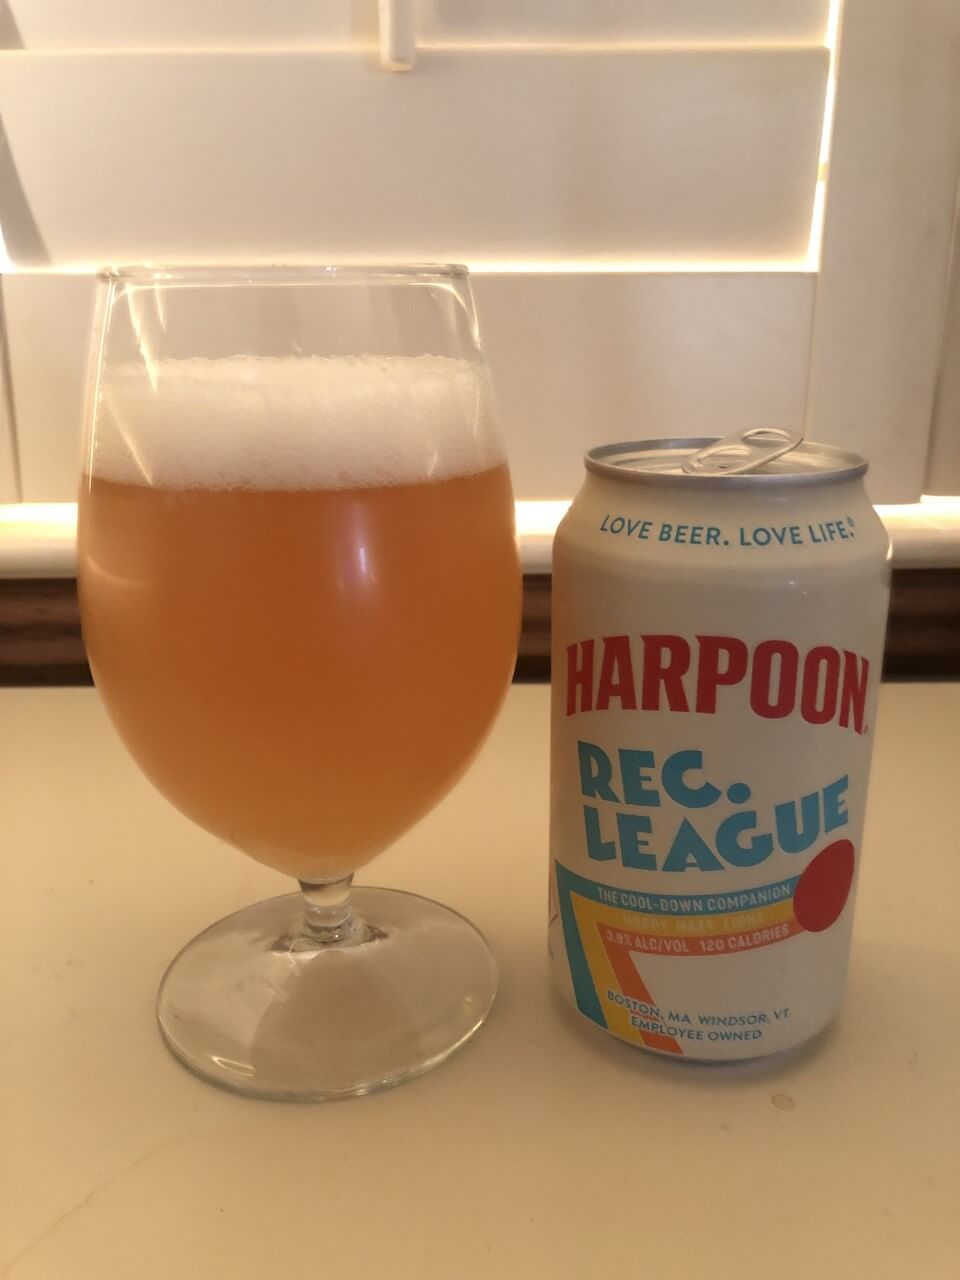 Harpoon Rec. League Hazy Pale Ale, glass and can